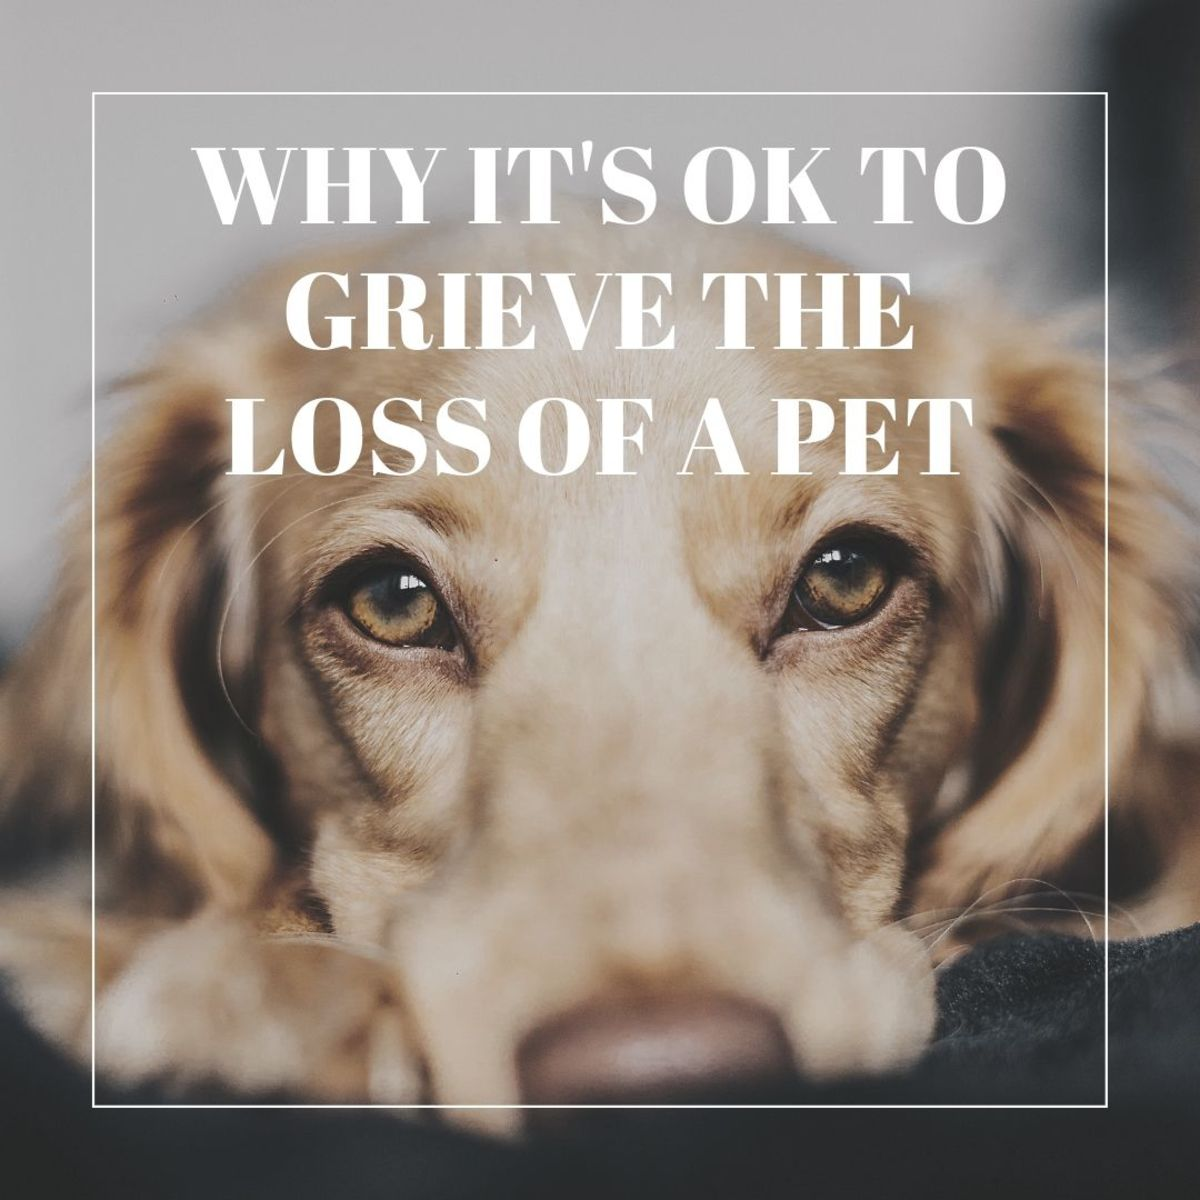 Why It's OK to Grieve a Pet... Even When You Have Lost Family Members